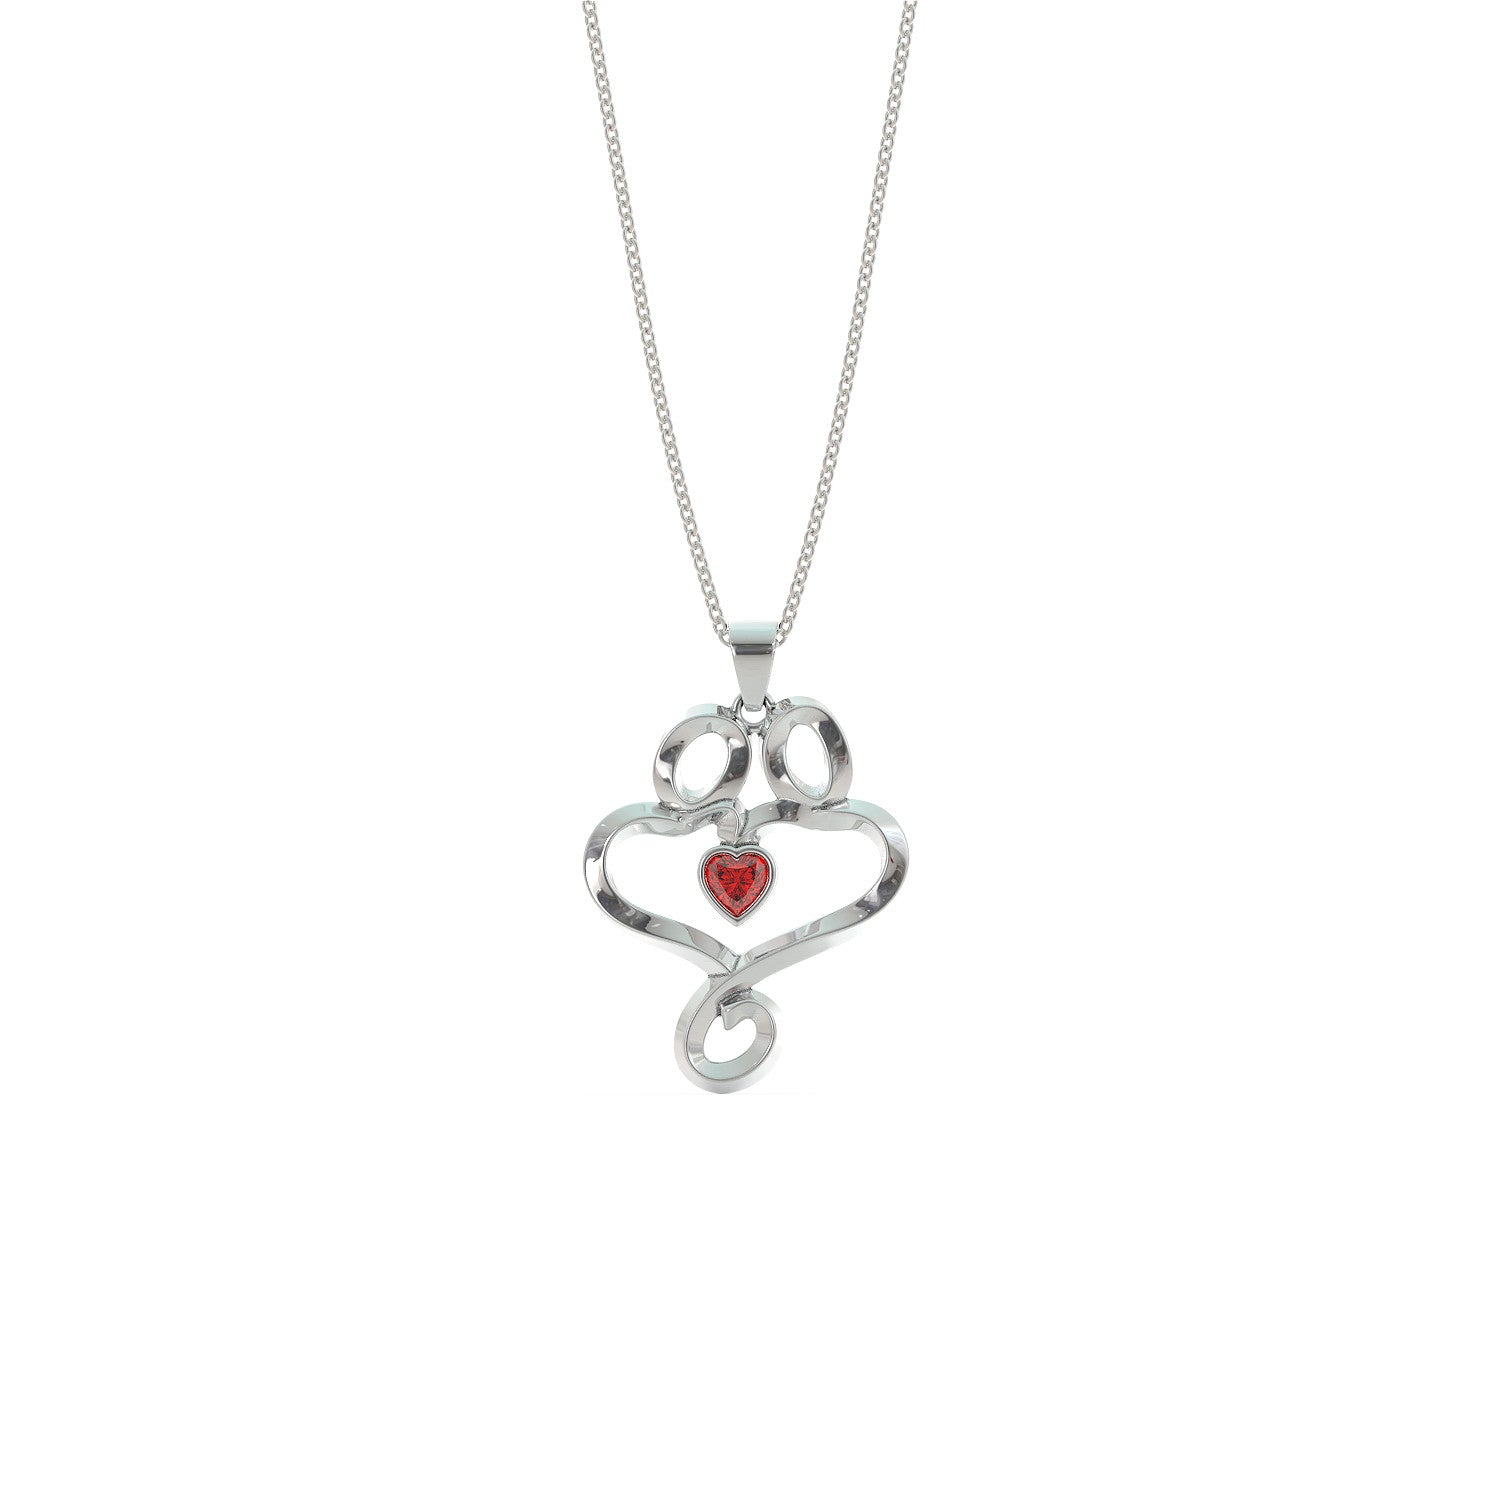 Soulmates in Love Necklace